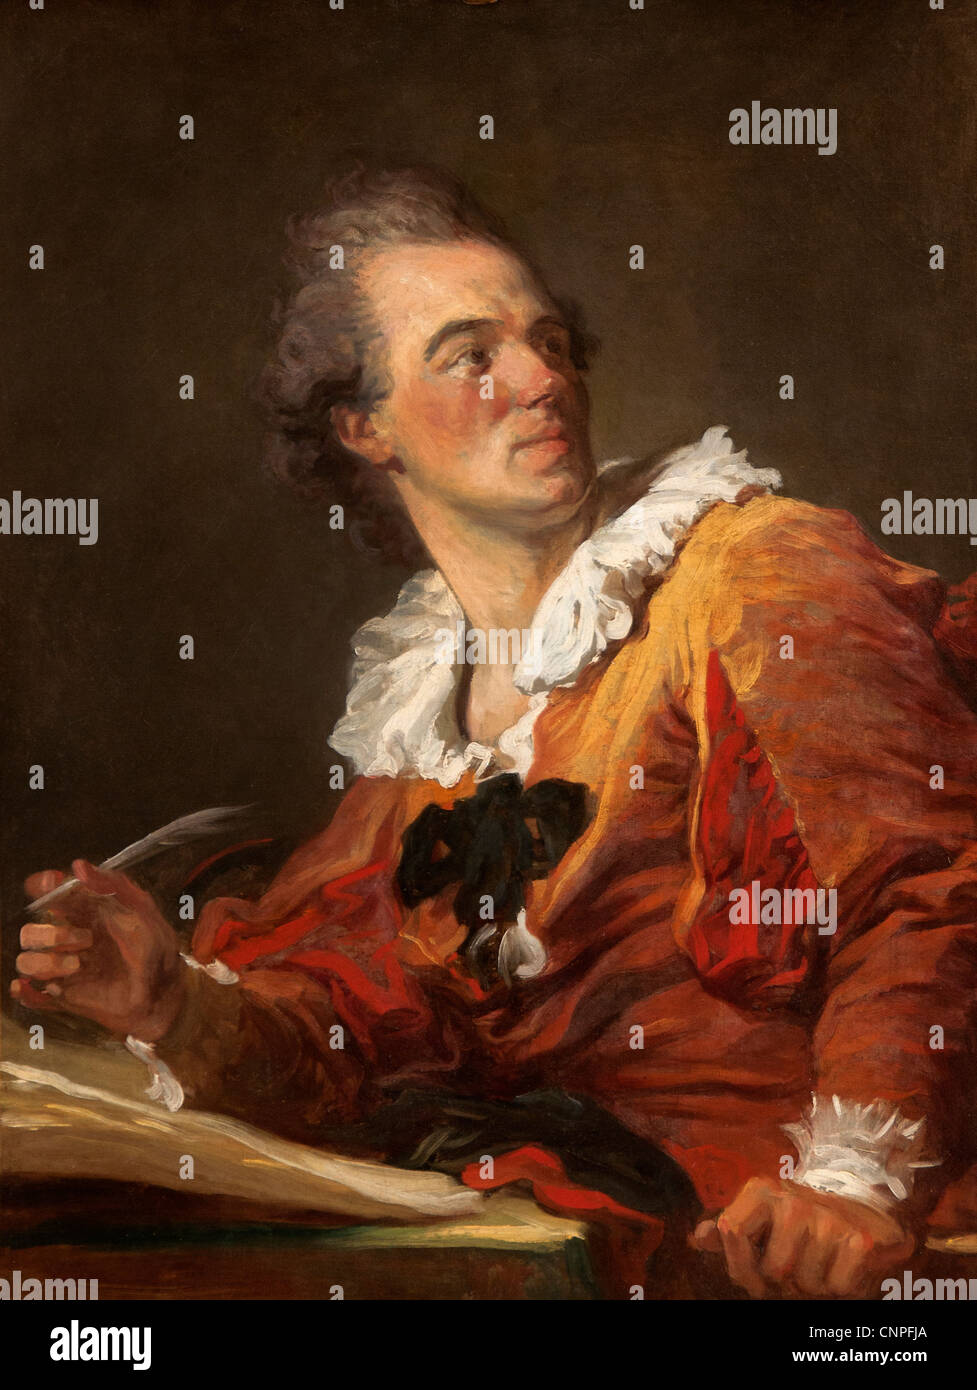 L'Inspiration -The Inspiration 1769 by Jean Honoré Fragonard 1732-1806  France French